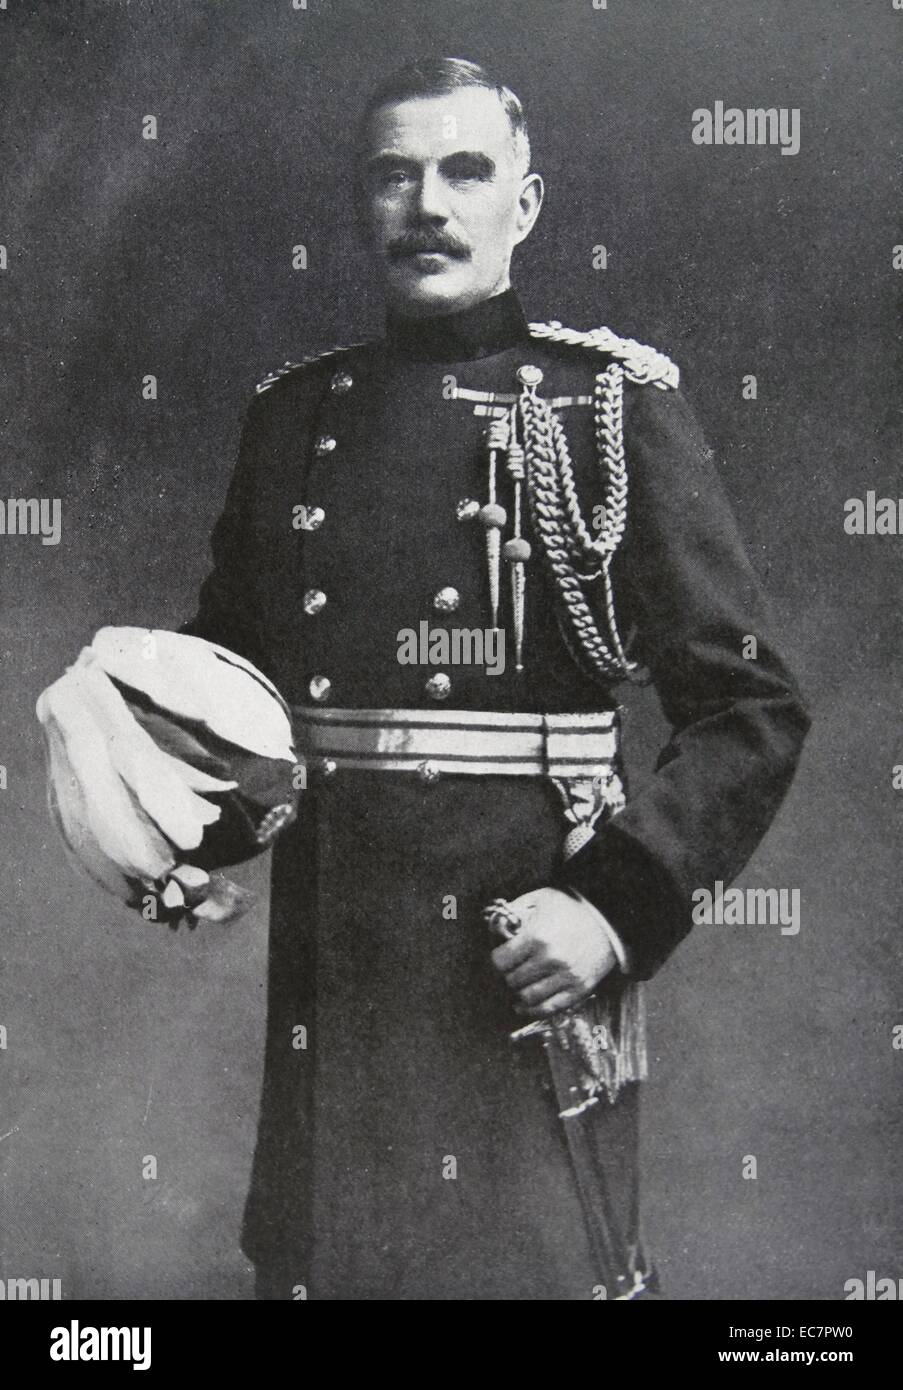 Field Marshal Sir William Robert Robertson, - Stock Image